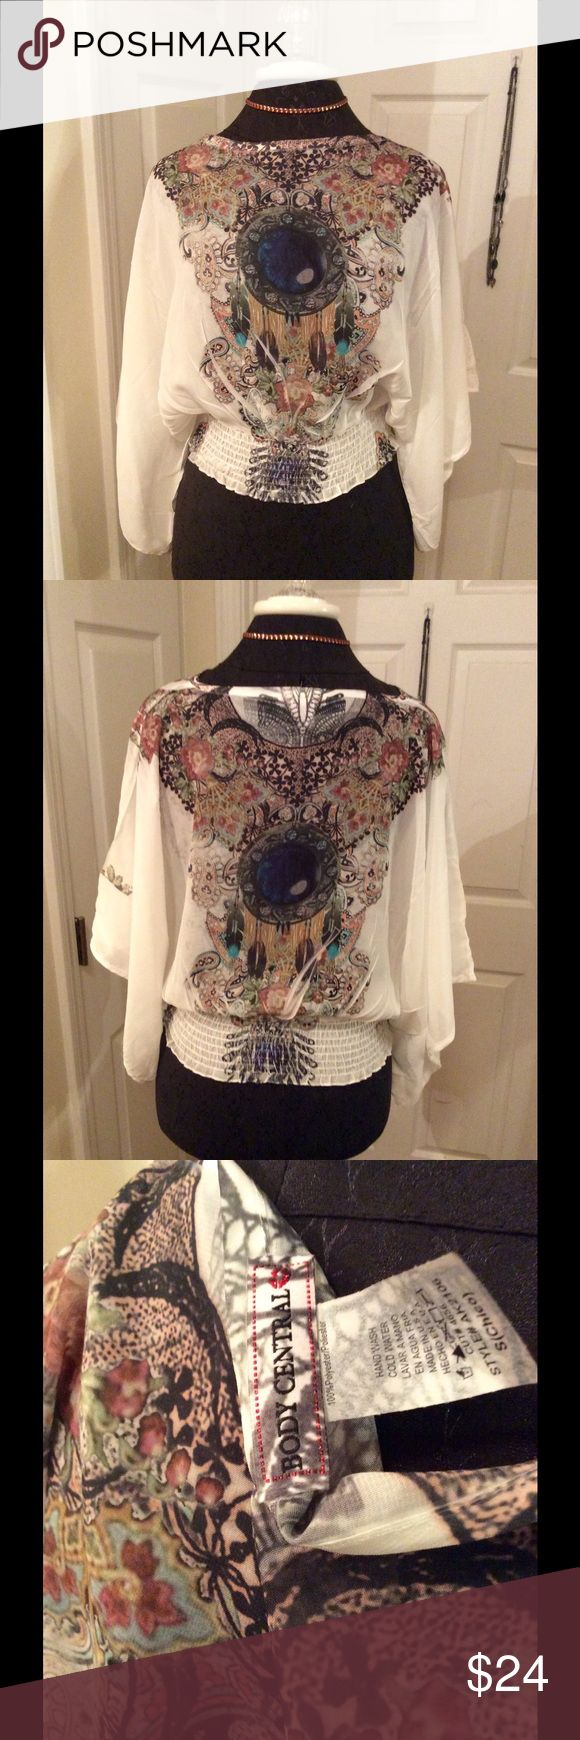 "⚜Boho style top by Body Central!⚜ Beautiful top by Body Central. Dollman sleeves with 3"" elastic waist. Stunning, vivid, jewel-like colors. Lightweight top. Body Central Tops Blouses"